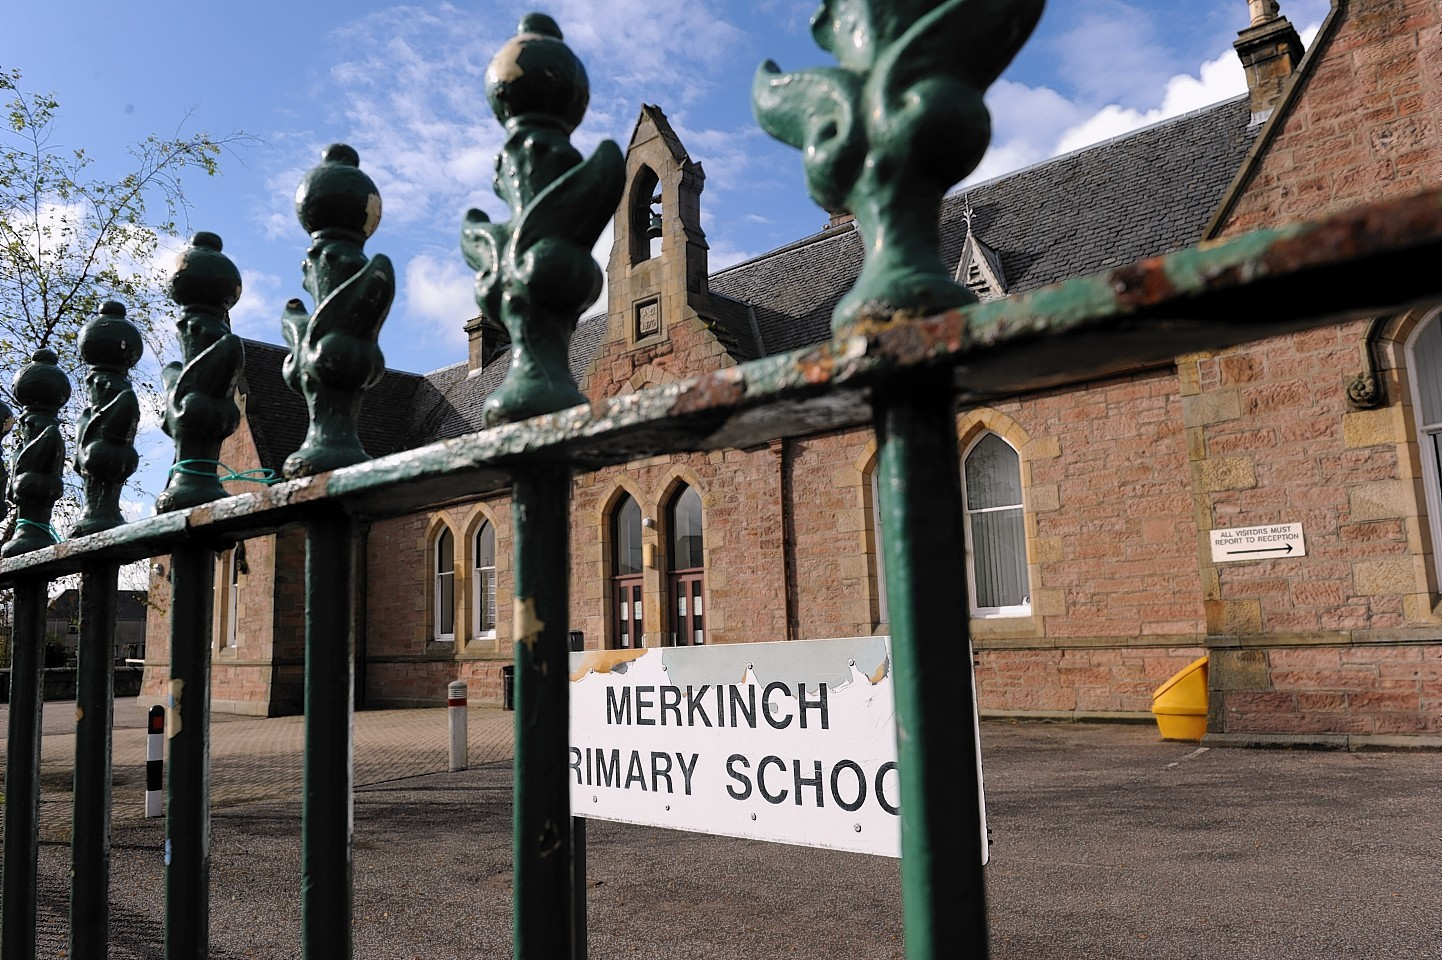 Merkinch Primary School